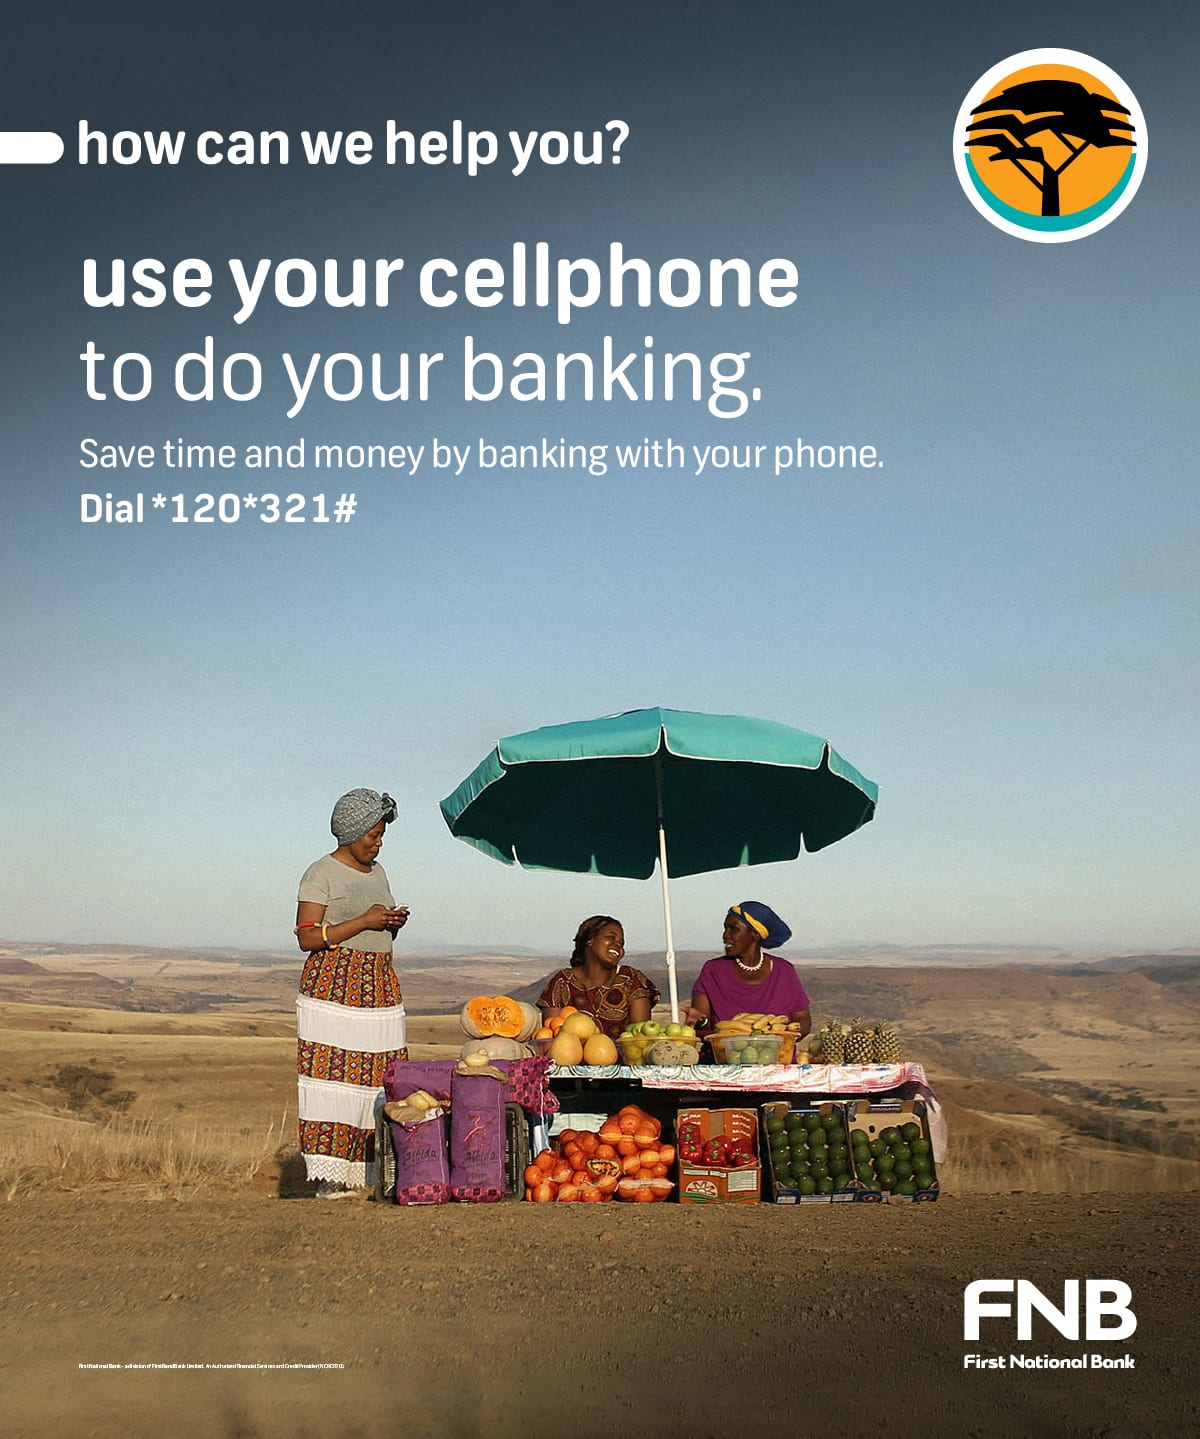 First National Bank branding and art direction